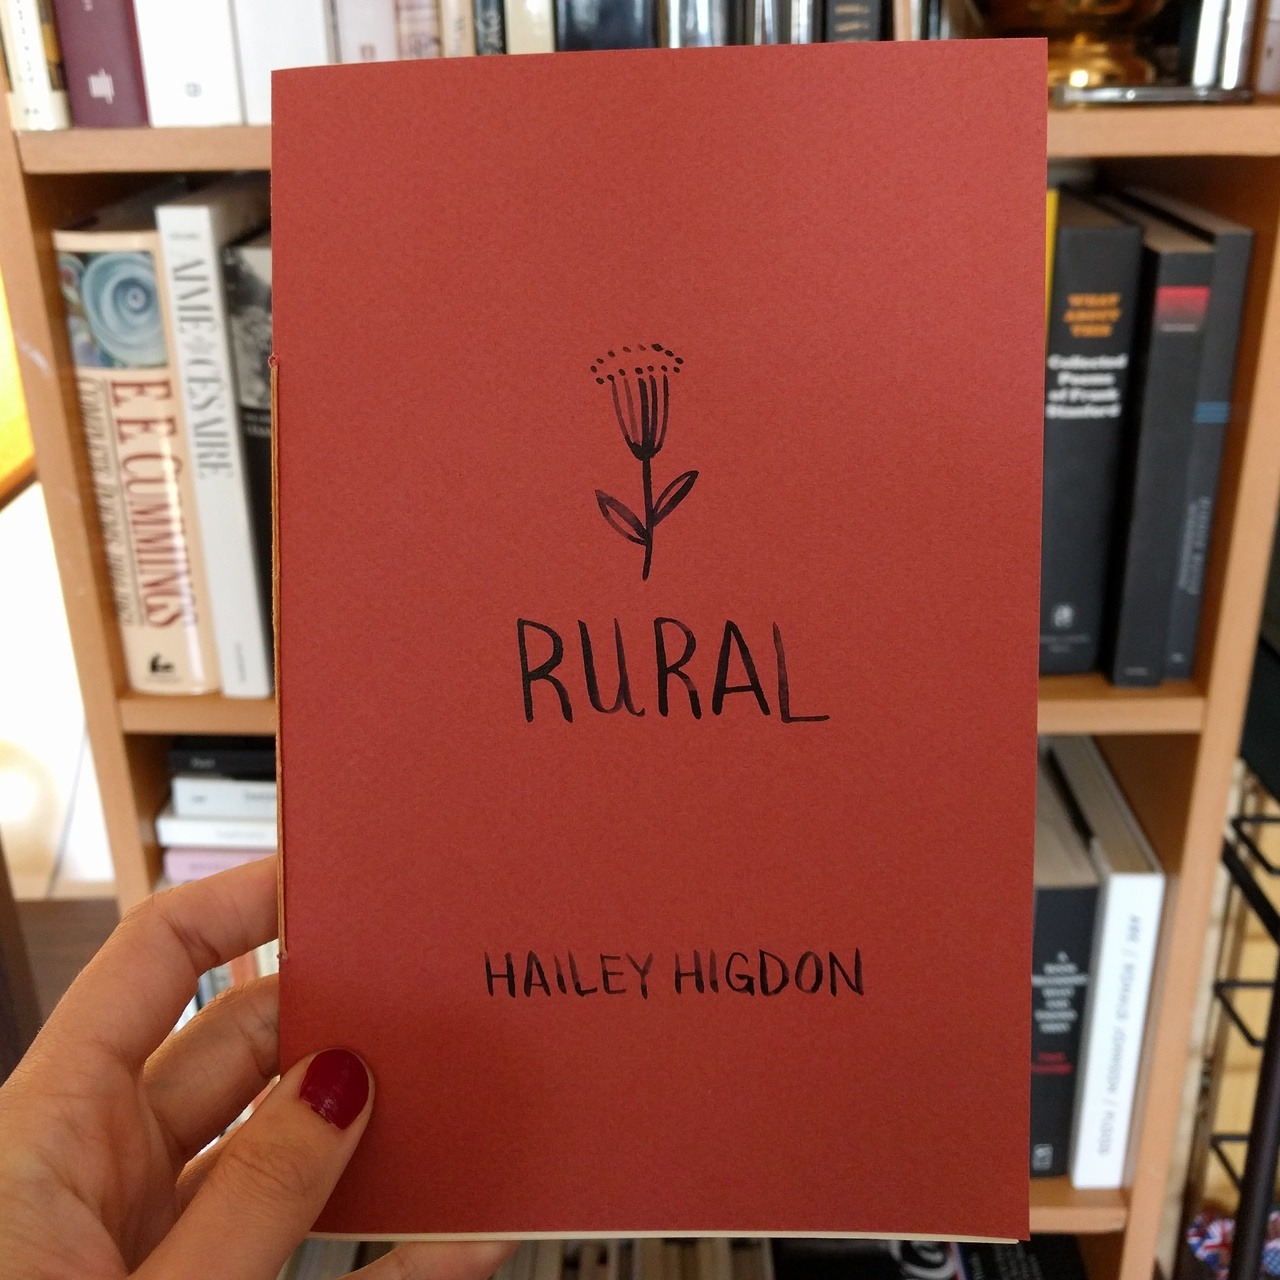 hailey higdon rural